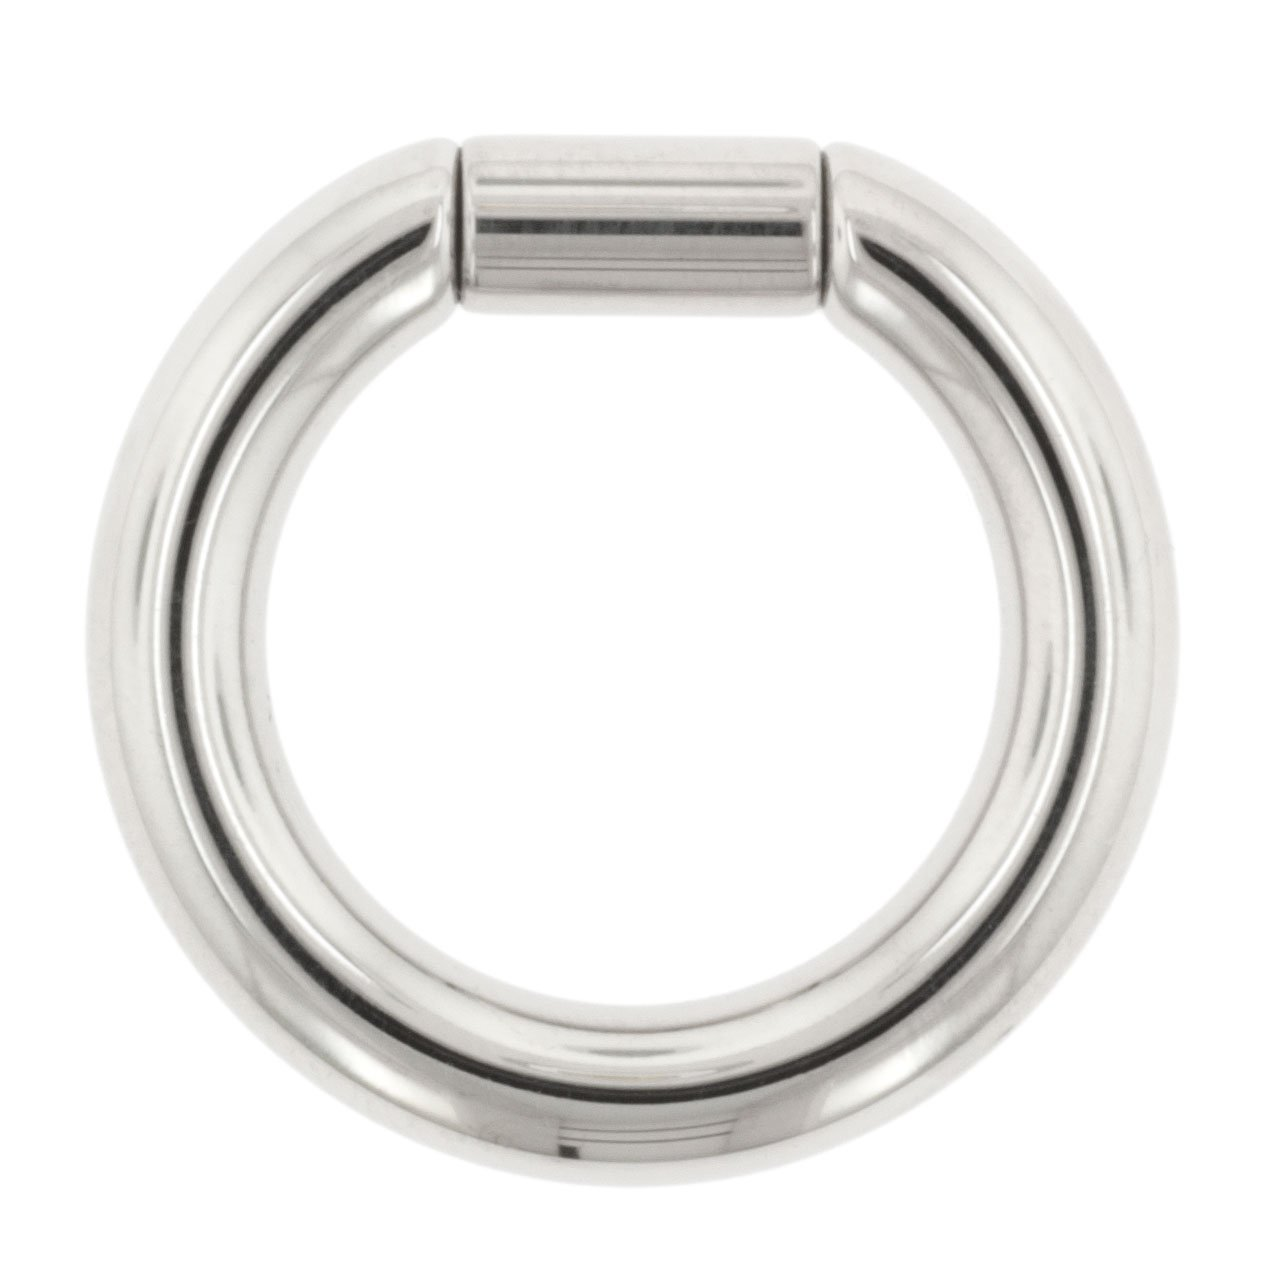 Body Circle Designs One Stainless Steel Captive Tube Ring: 6g, 7/16'' (Sold Individually. Order Two for A Pair.) by Body Circle Designs